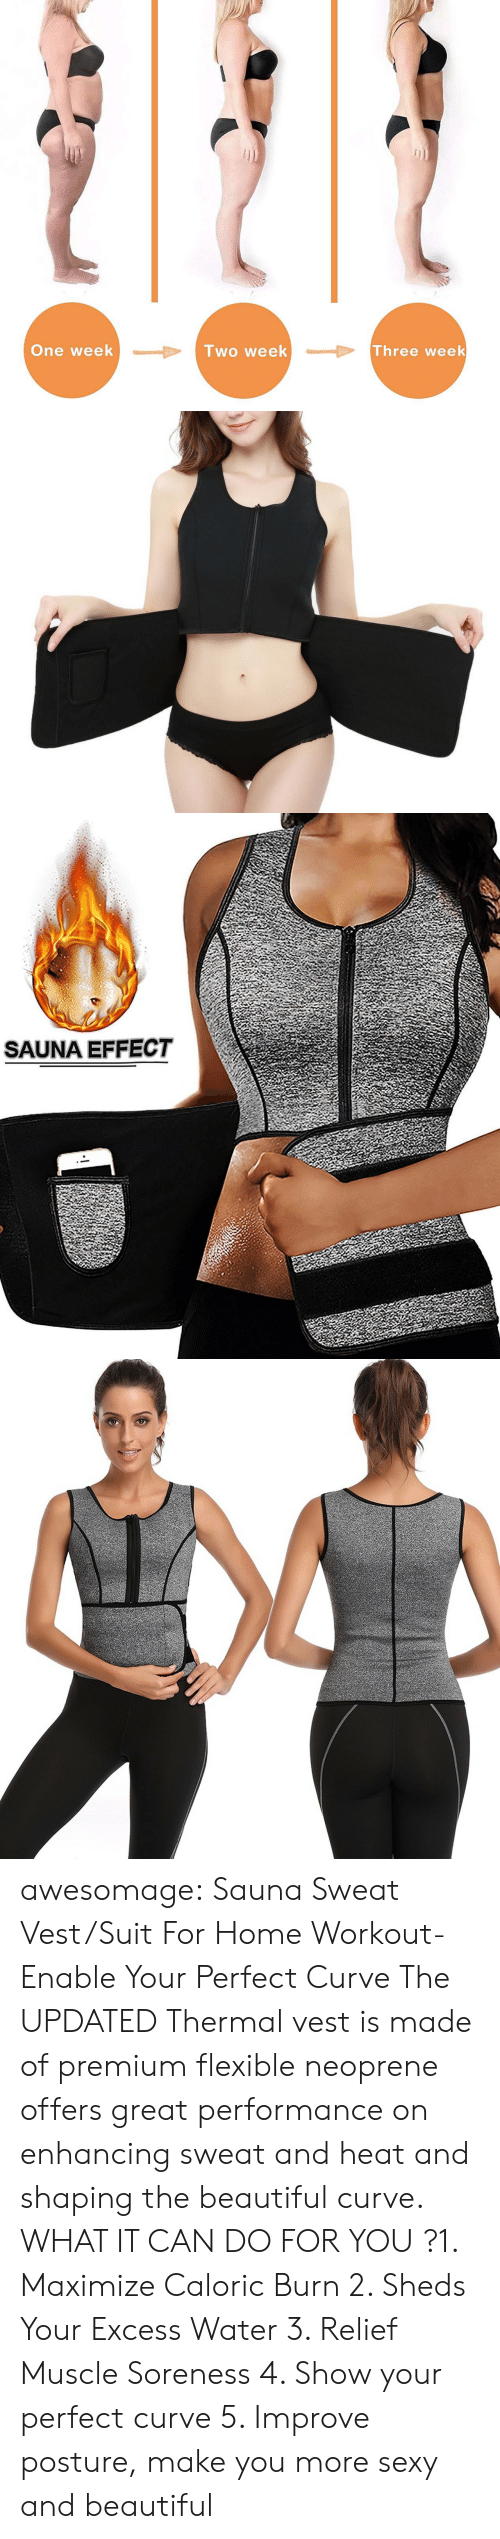 sheds: One week  lwo week  Three week   SAUNA EFFECT awesomage:   Sauna Sweat Vest/Suit For Home Workout- Enable Your Perfect Curve The UPDATED Thermal vest is made of premium flexible neoprene offers great performance on enhancing sweat and heat and shaping the beautiful curve. WHAT IT CAN DO FOR YOU ?1. Maximize Caloric Burn 2. Sheds Your Excess Water 3. Relief Muscle Soreness 4. Show your perfect curve 5. Improve posture, make you more sexy and beautiful